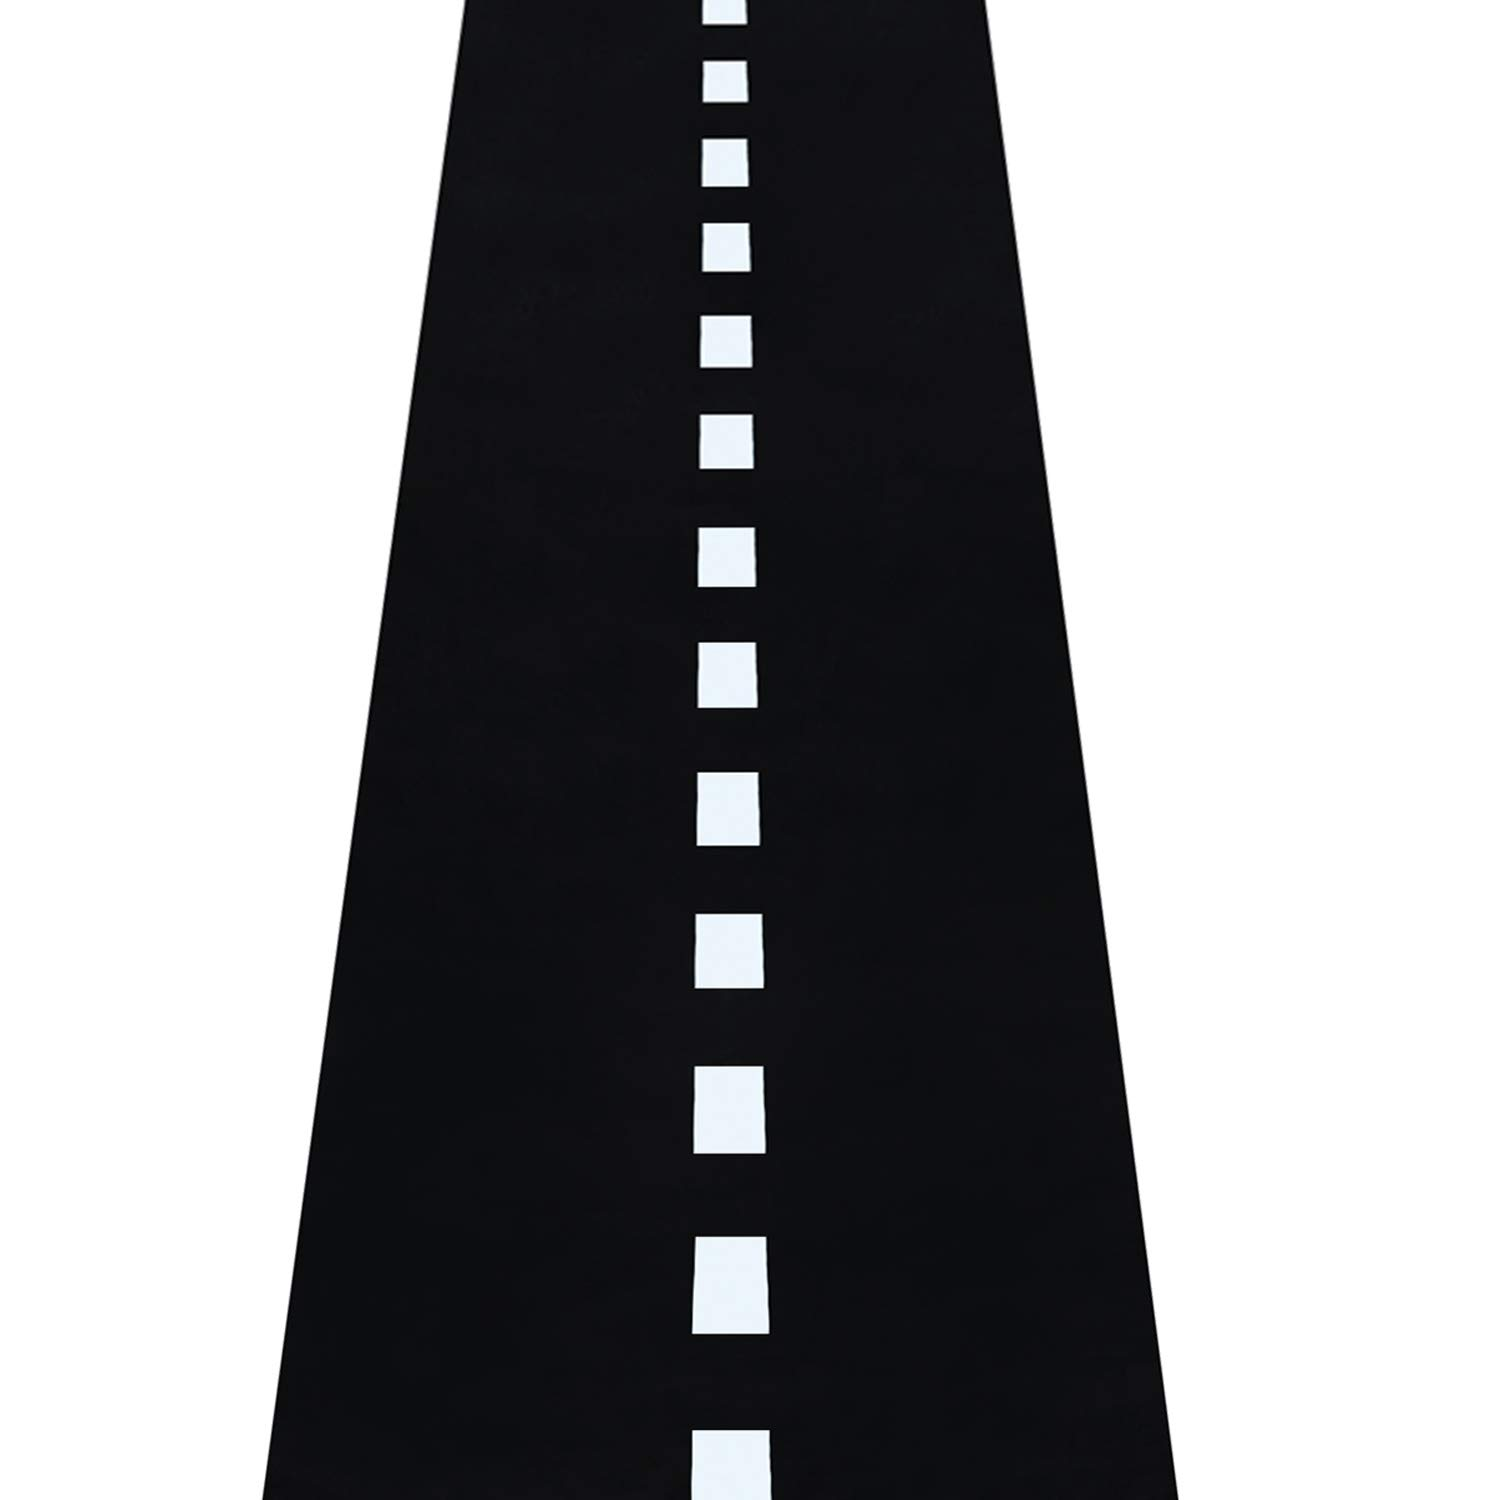 Novelty Place Racetrack Floor Runner - 10 Ft x 2 Ft Black Race Track Running Mat - Sports Race Car Theme Party Entry Table Decorations